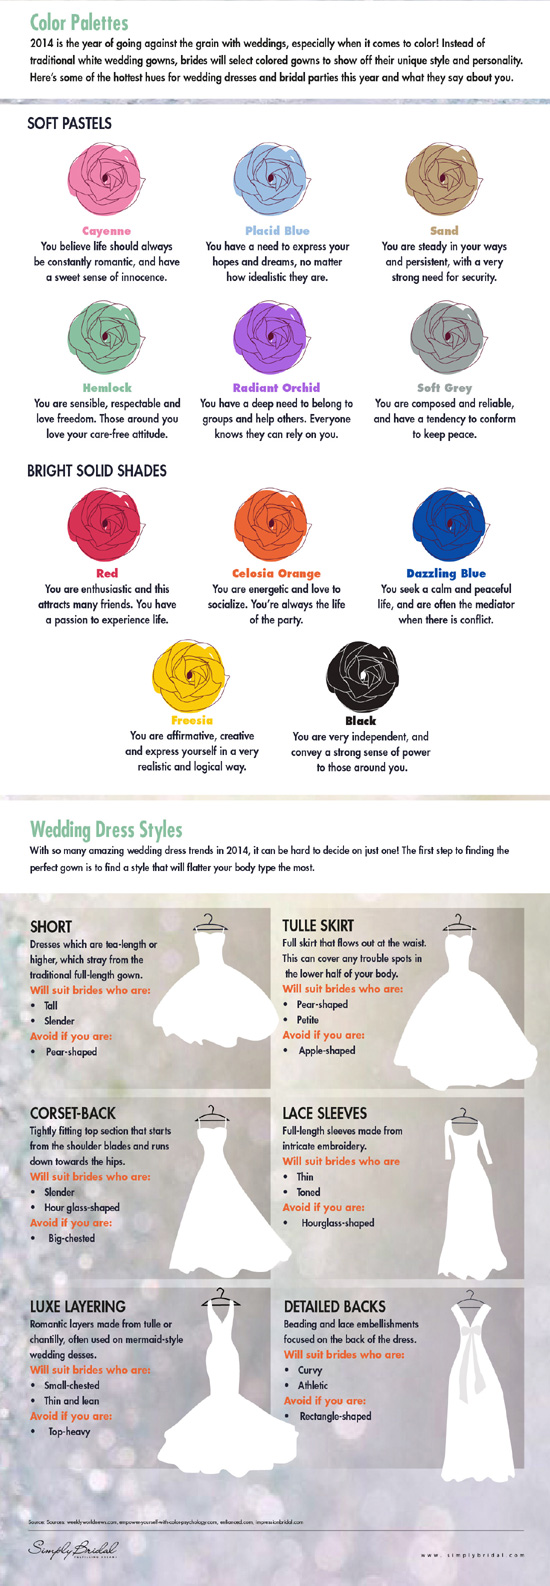 2014 Wedding Trends